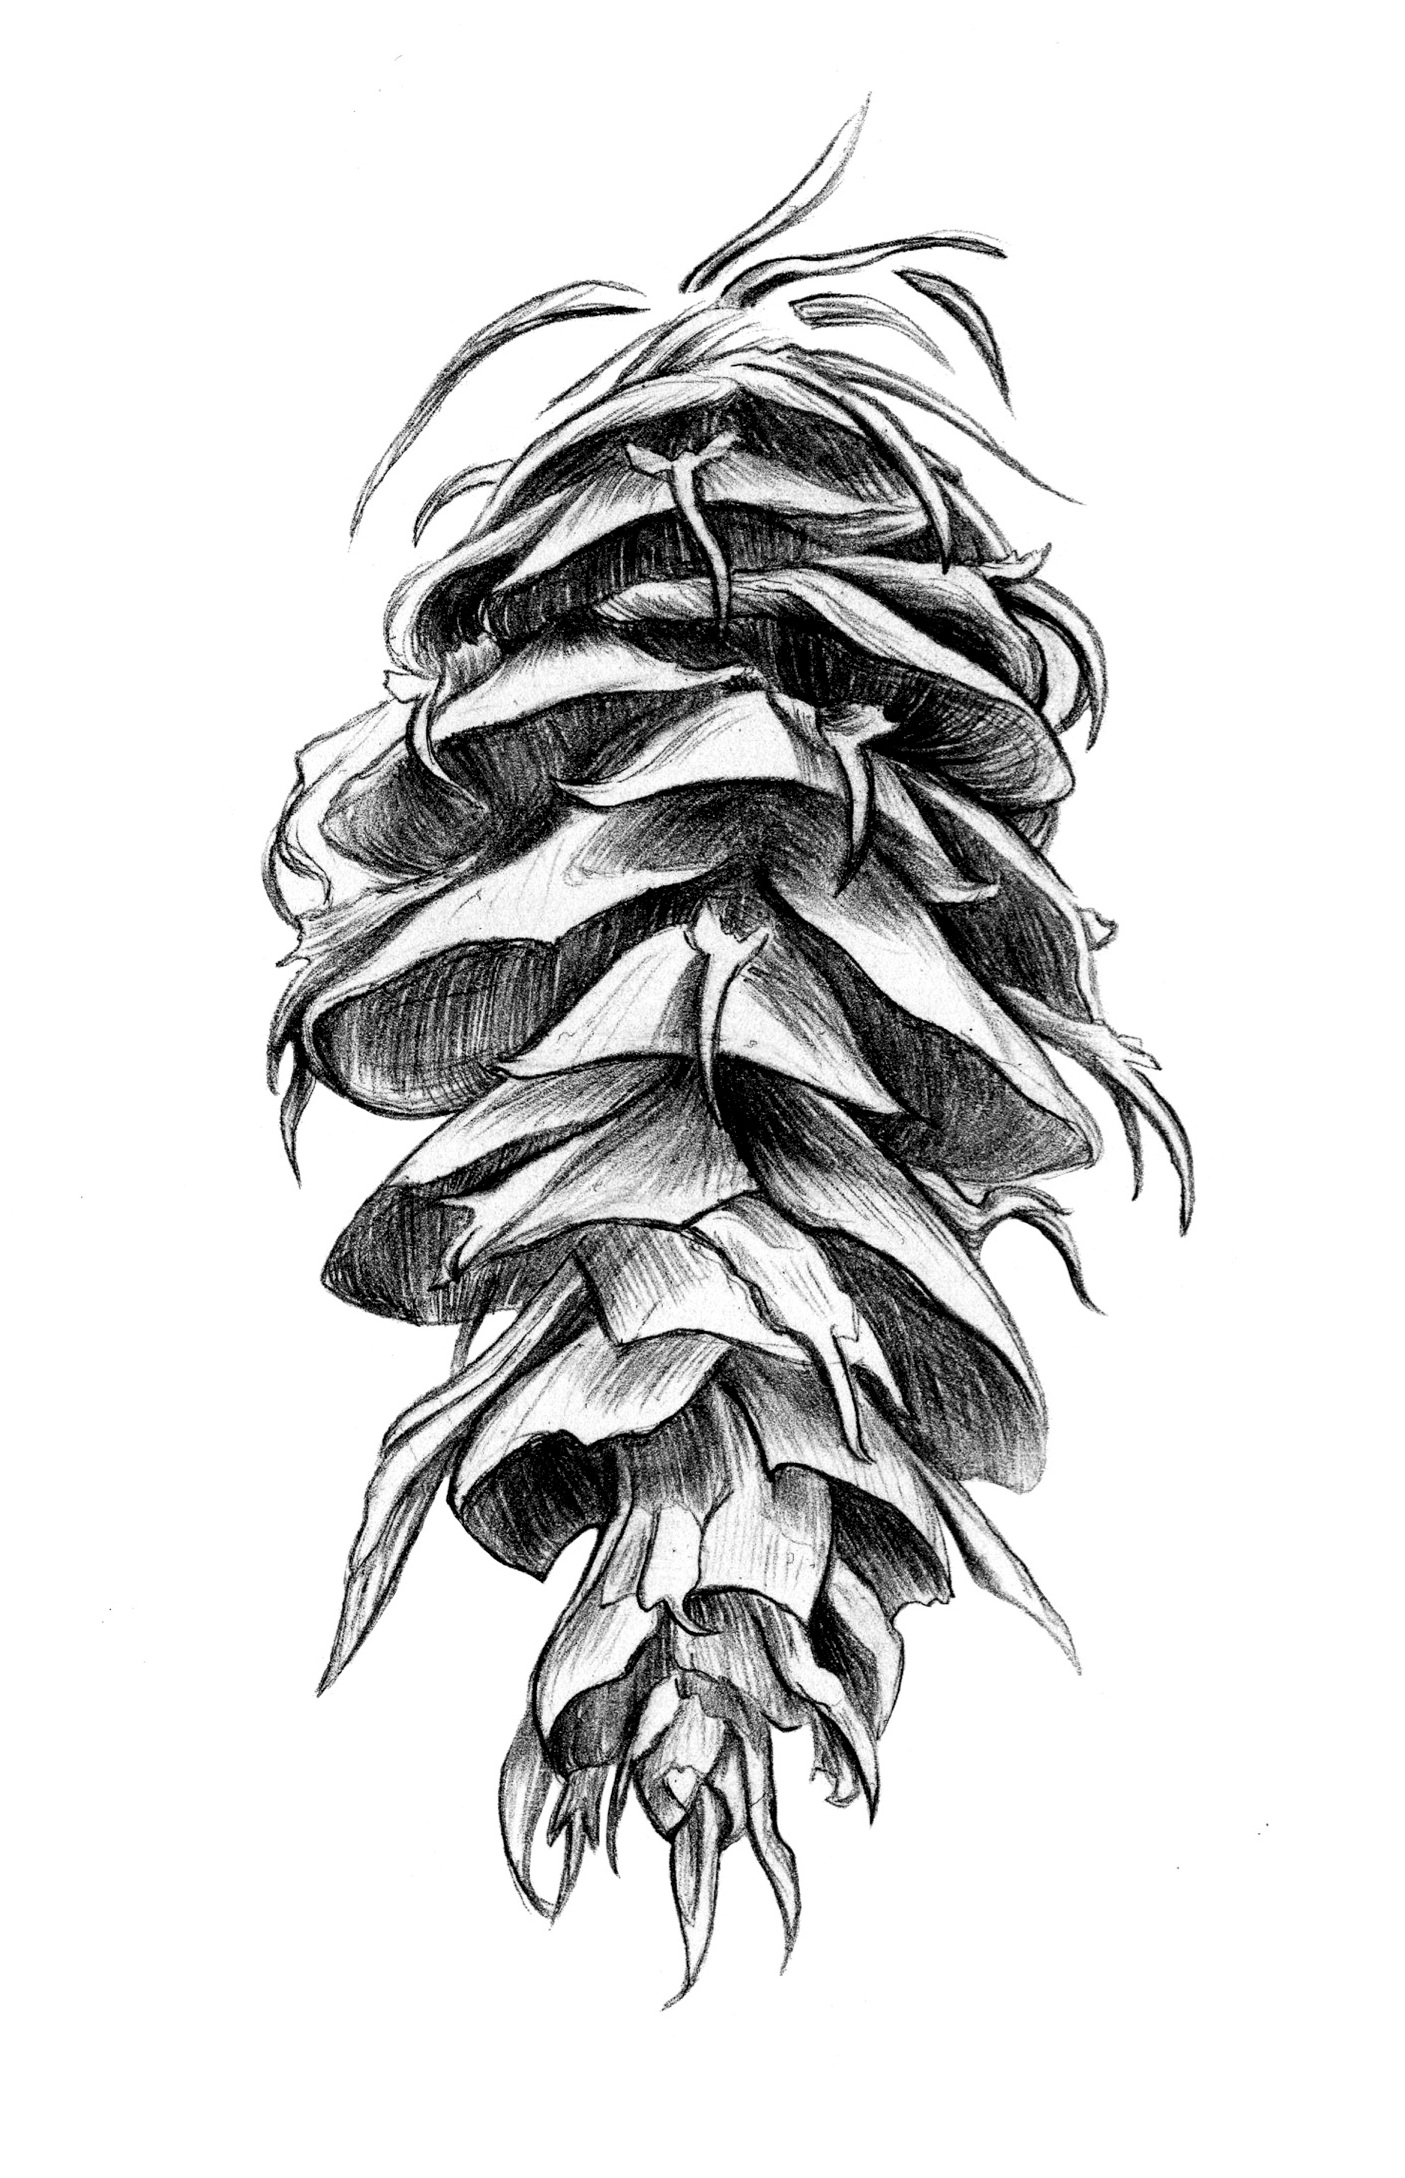 Doug Fir Cone_Lori LaBissoniere_edited.jpeg